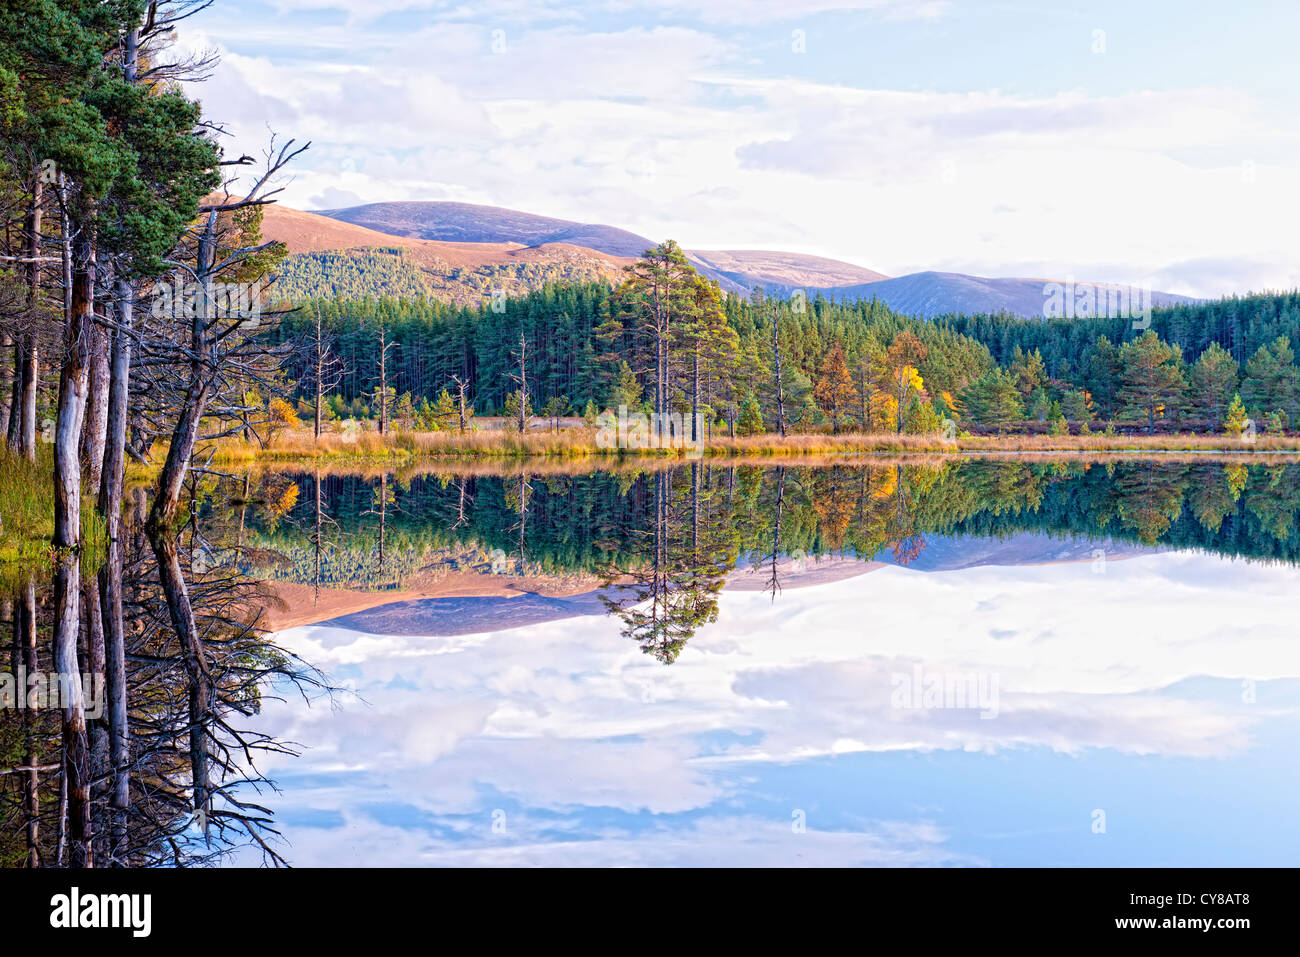 Uath lochens a small group of lochs in the carmgorm national park scotland - Stock Image